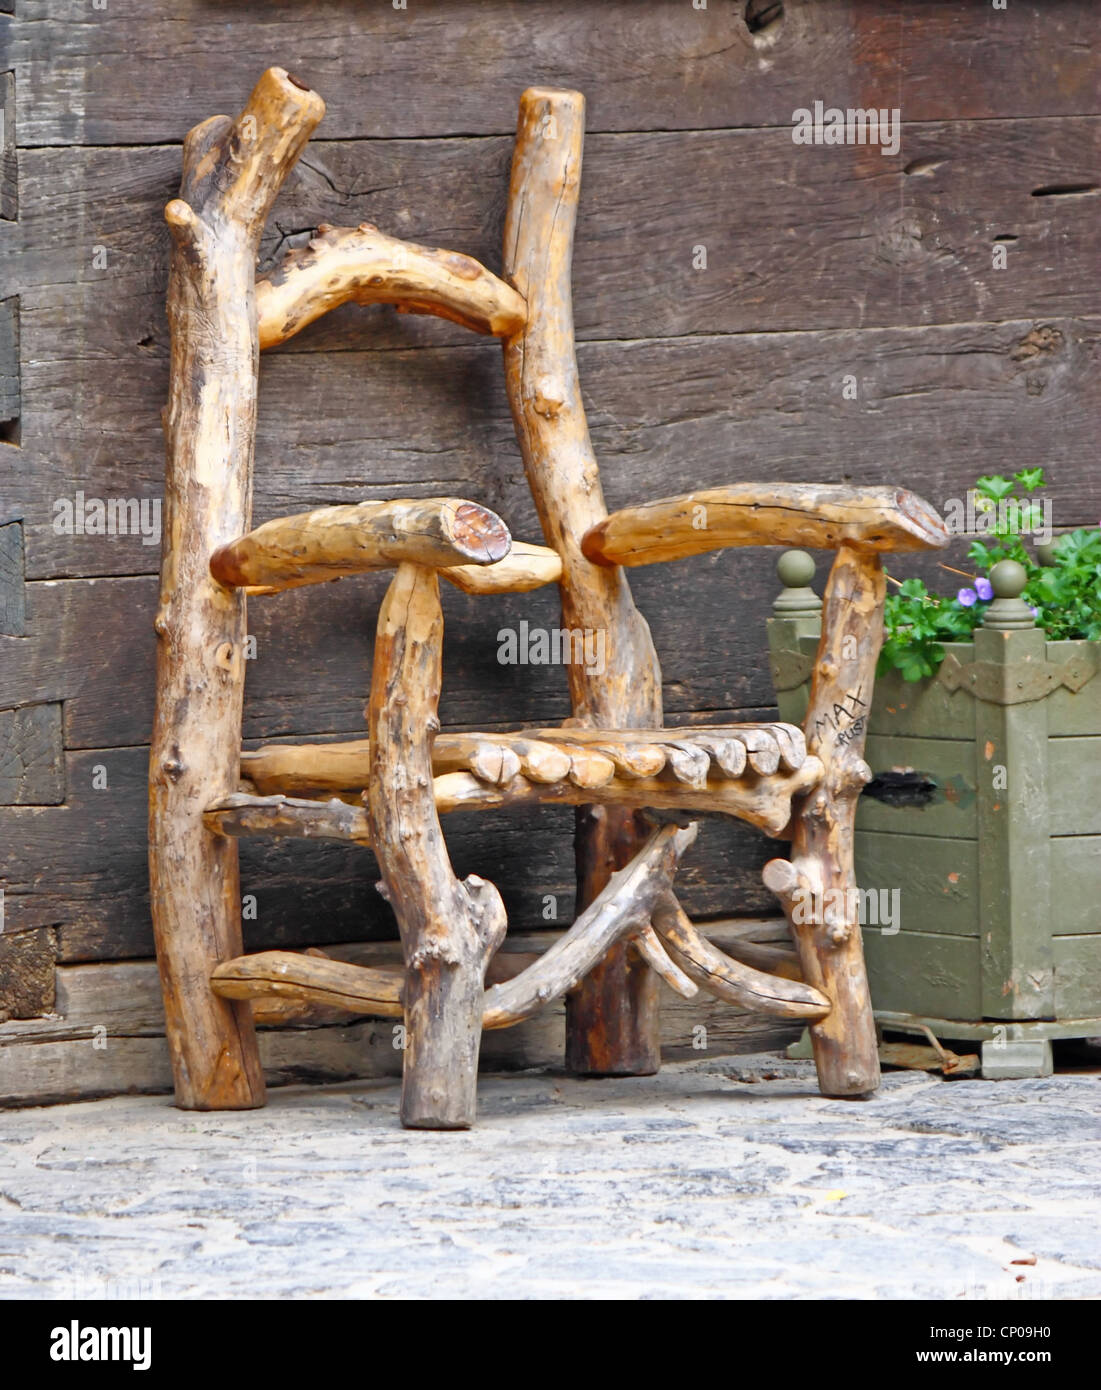 Merveilleux An Unusual Chair Made From Branches   Stock Image